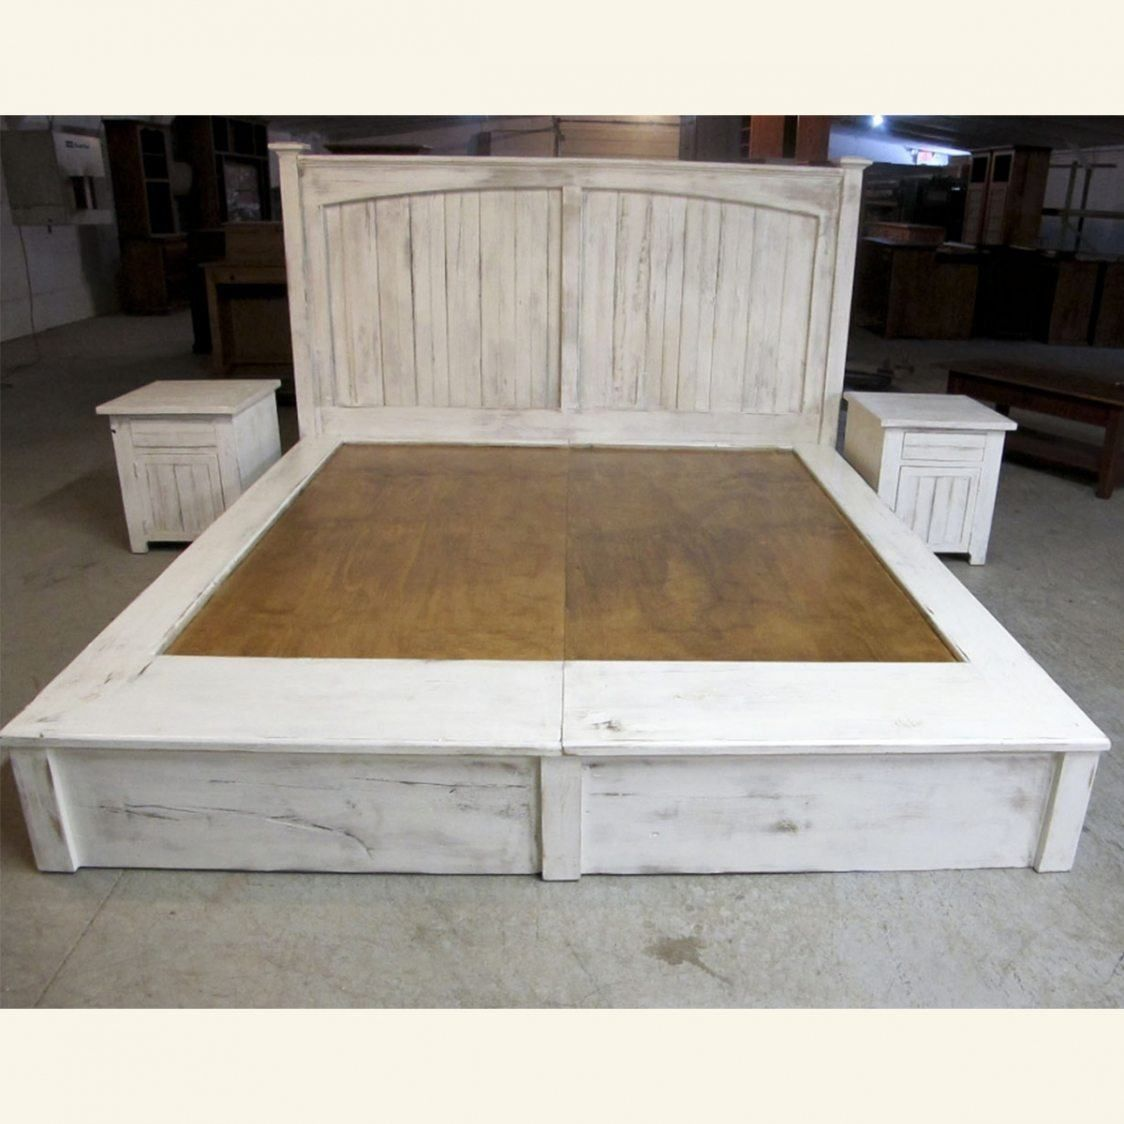 How to build a beautiful DIY bed frame & wood headboard